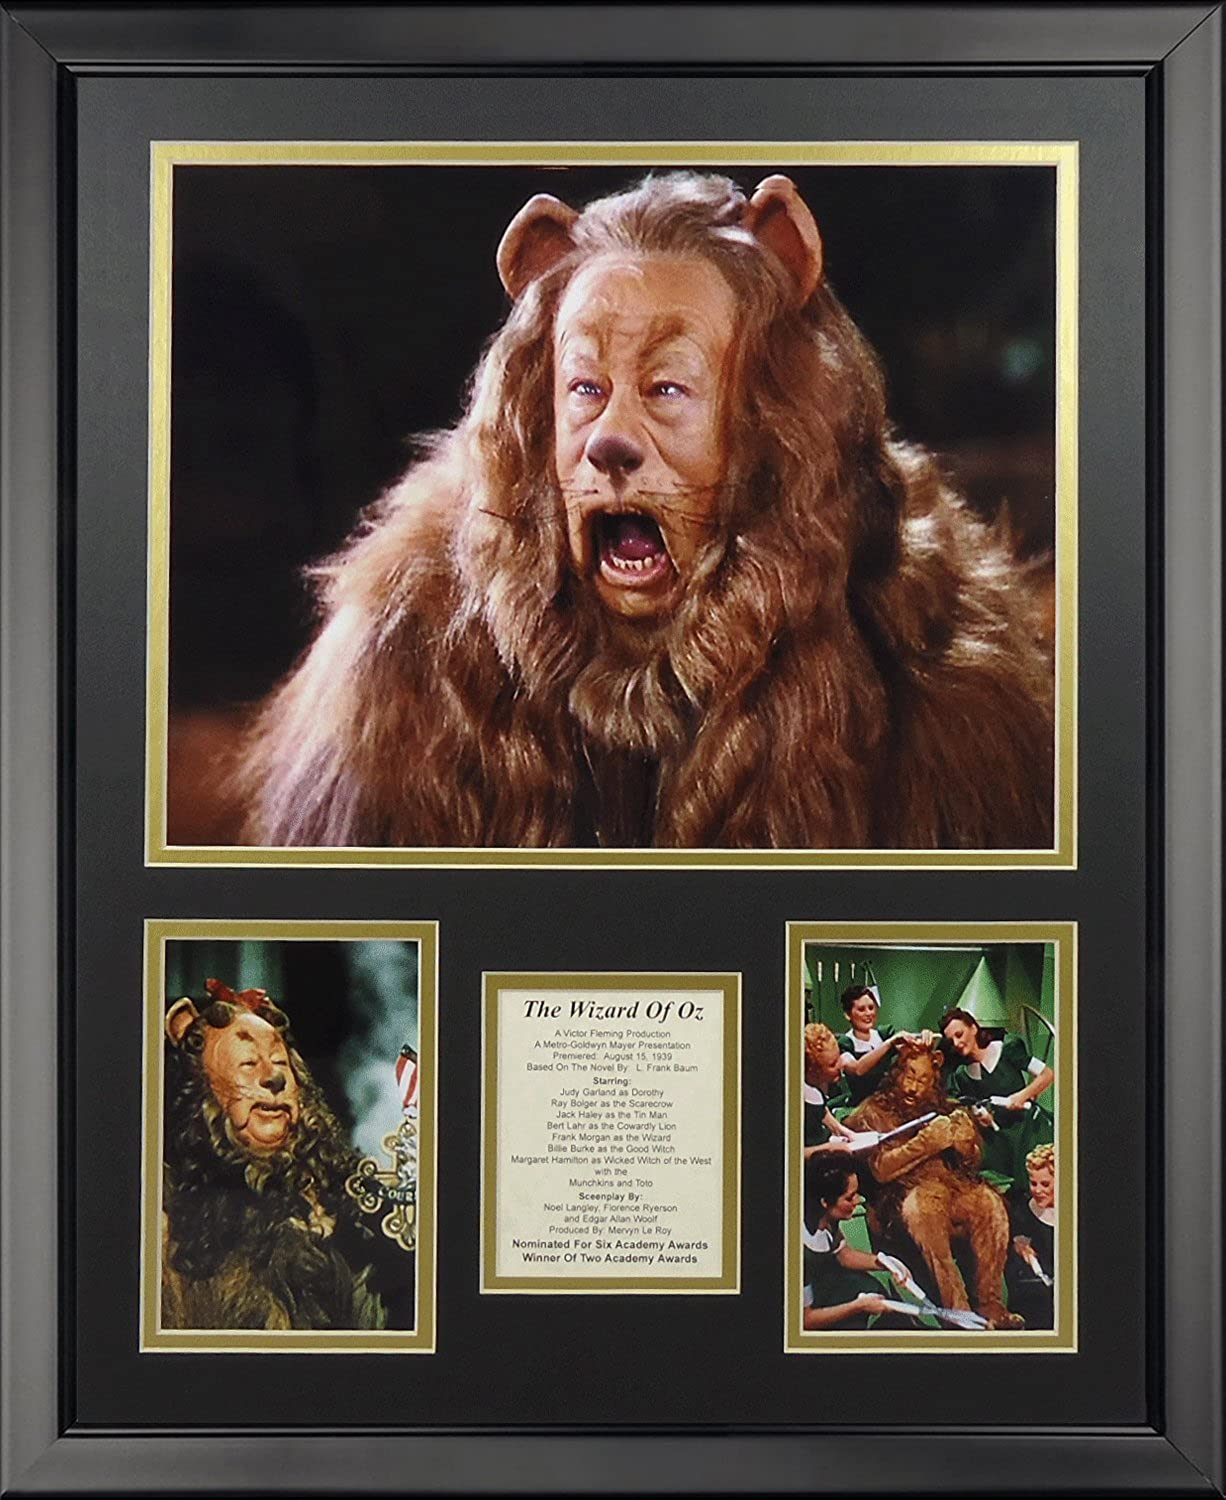 Legends Never Die The Wizard of Oz Lion Framed Photo Collage, 16  x 20